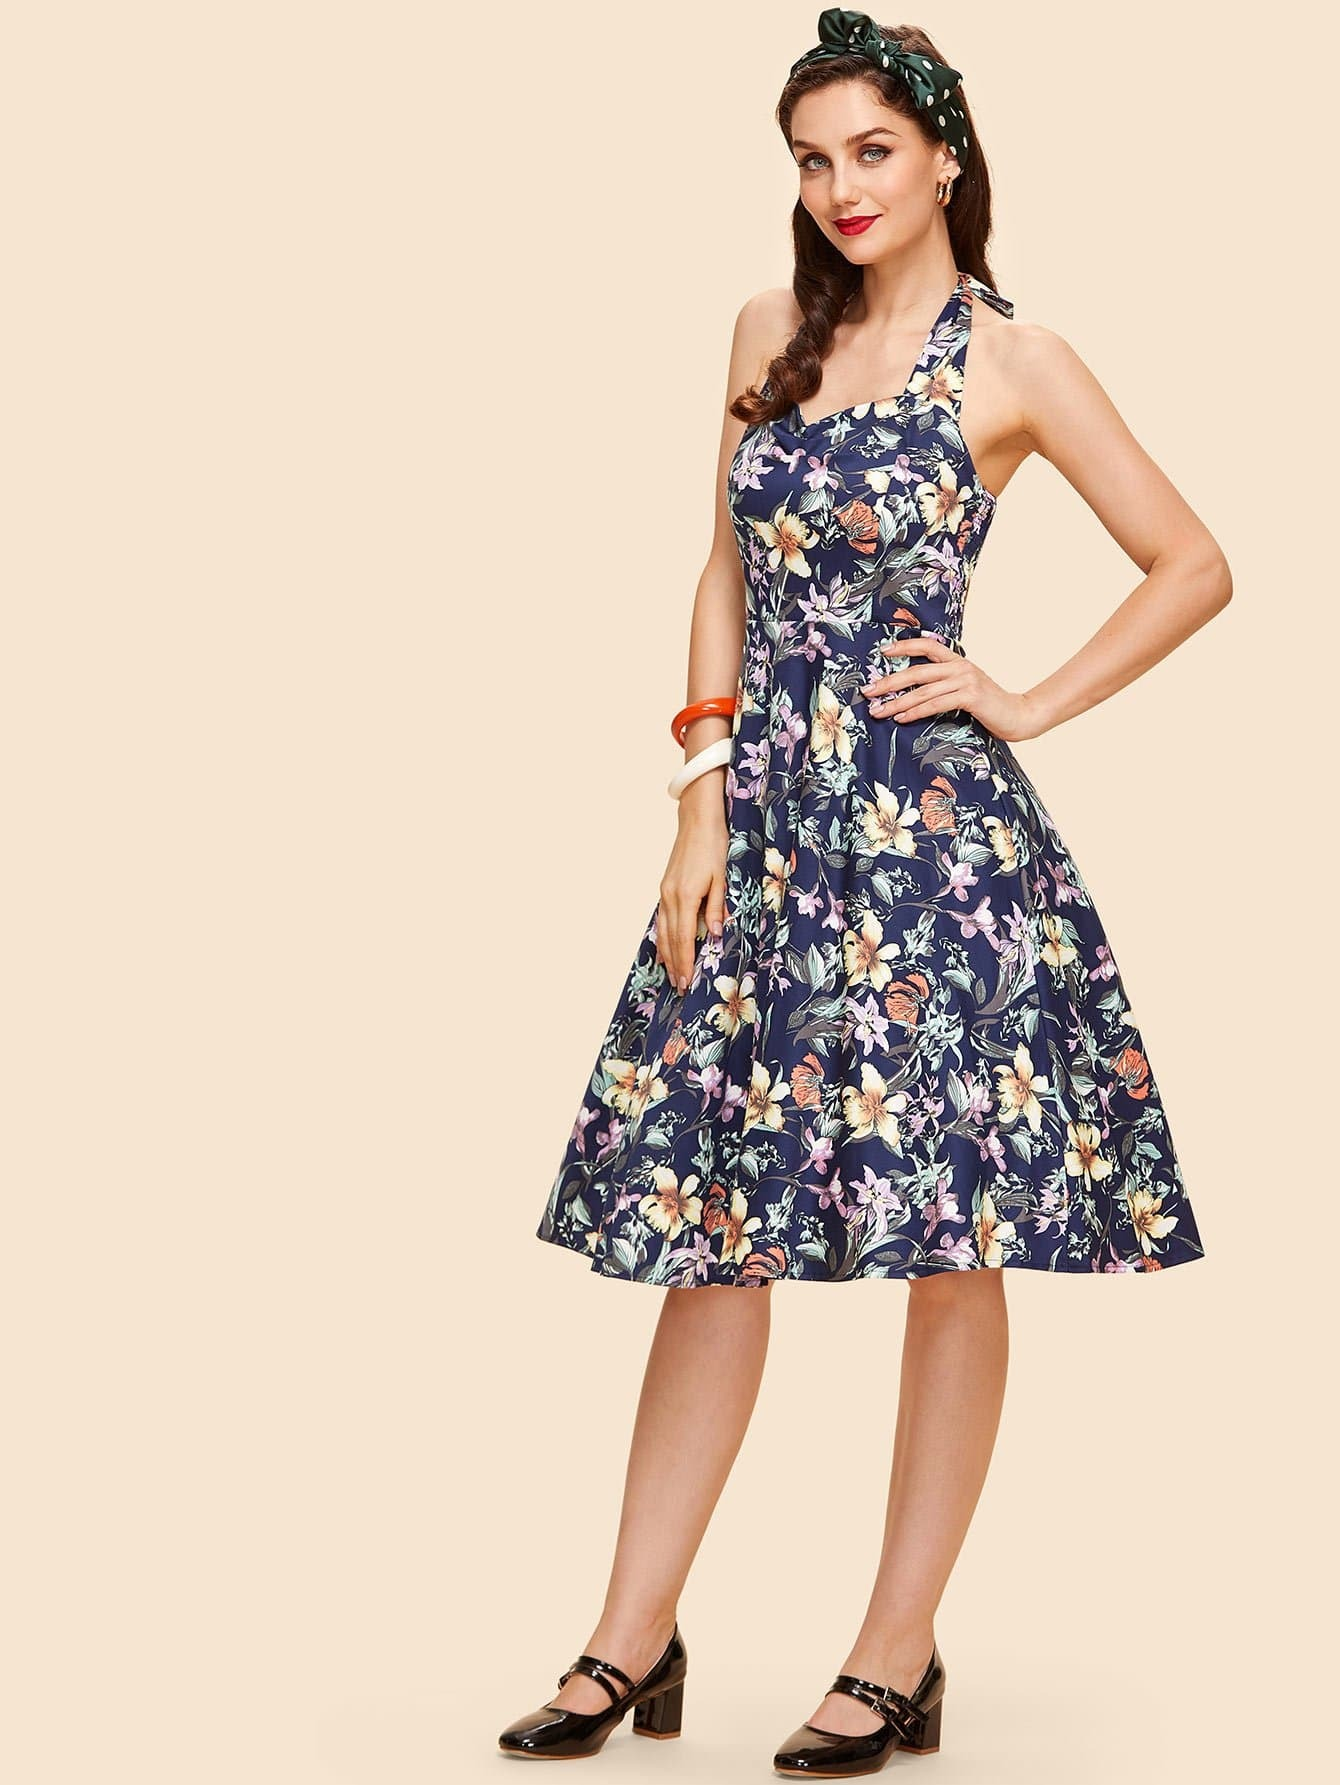 Floral Print Knot Back Halter Dress cut out knot back floral print dress